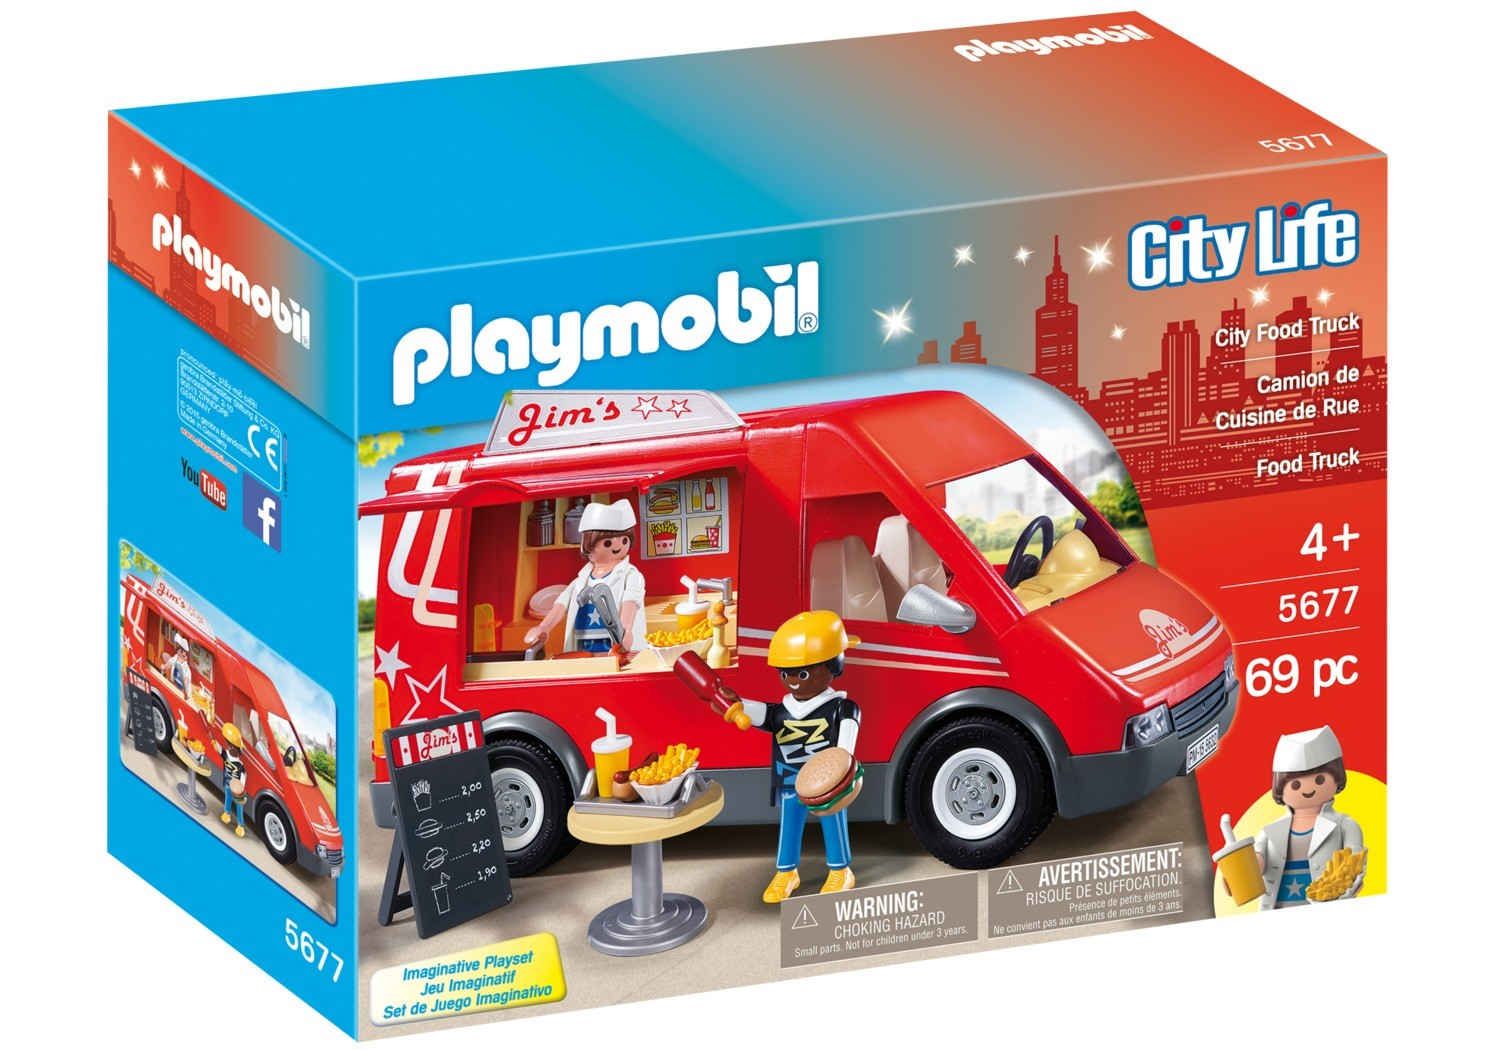 Jim S City Food Truck Playmobil In The City 5677